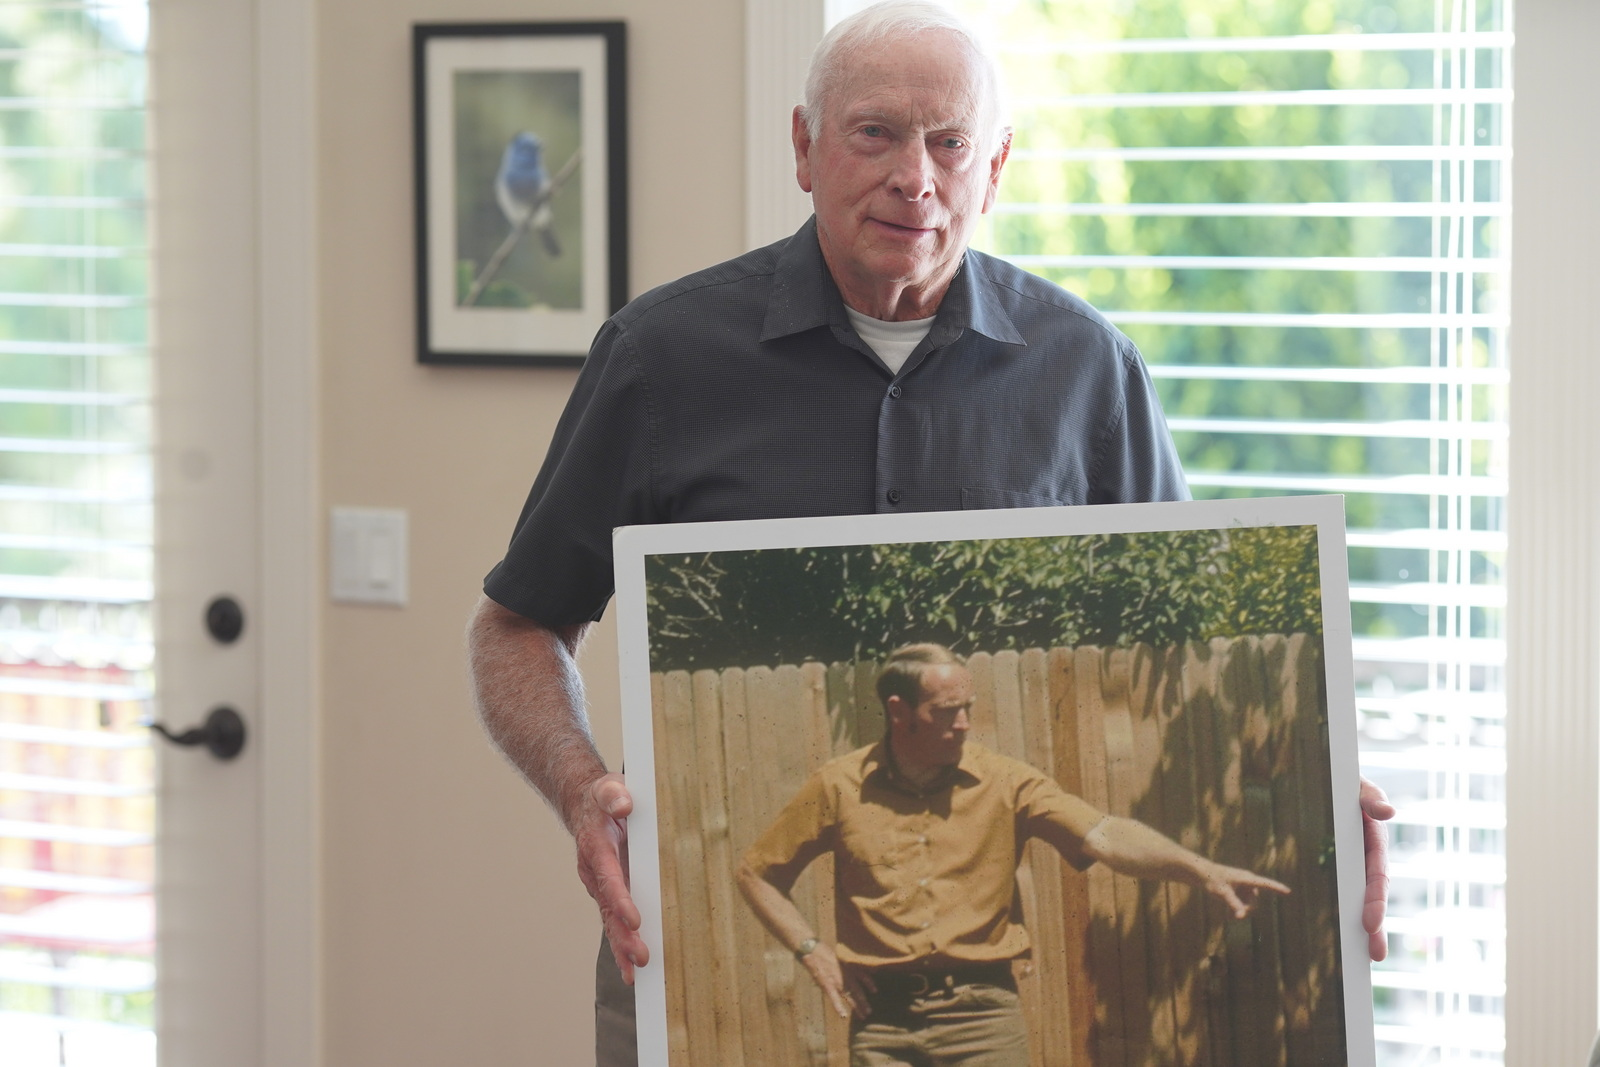 Vern holding a photo of him when he was younger